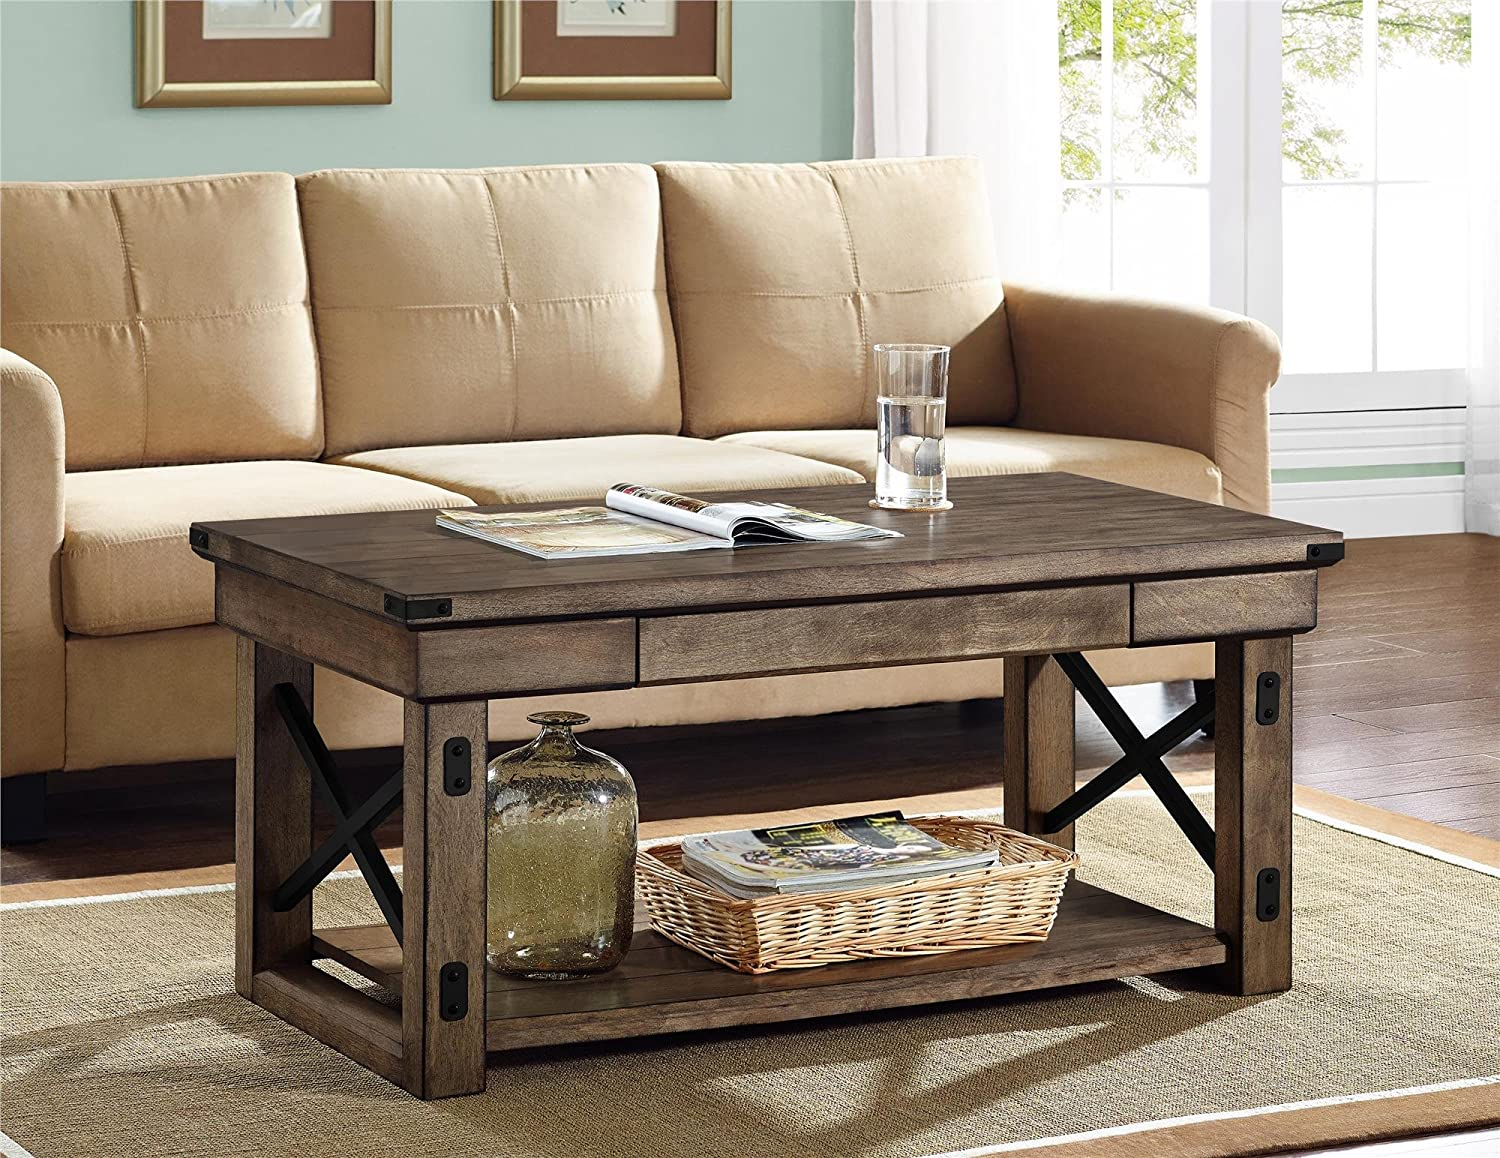 Amazon.com: Altra Wildwood Wood Veneer Coffee Table, Rustic Gray: Kitchen U0026  Dining